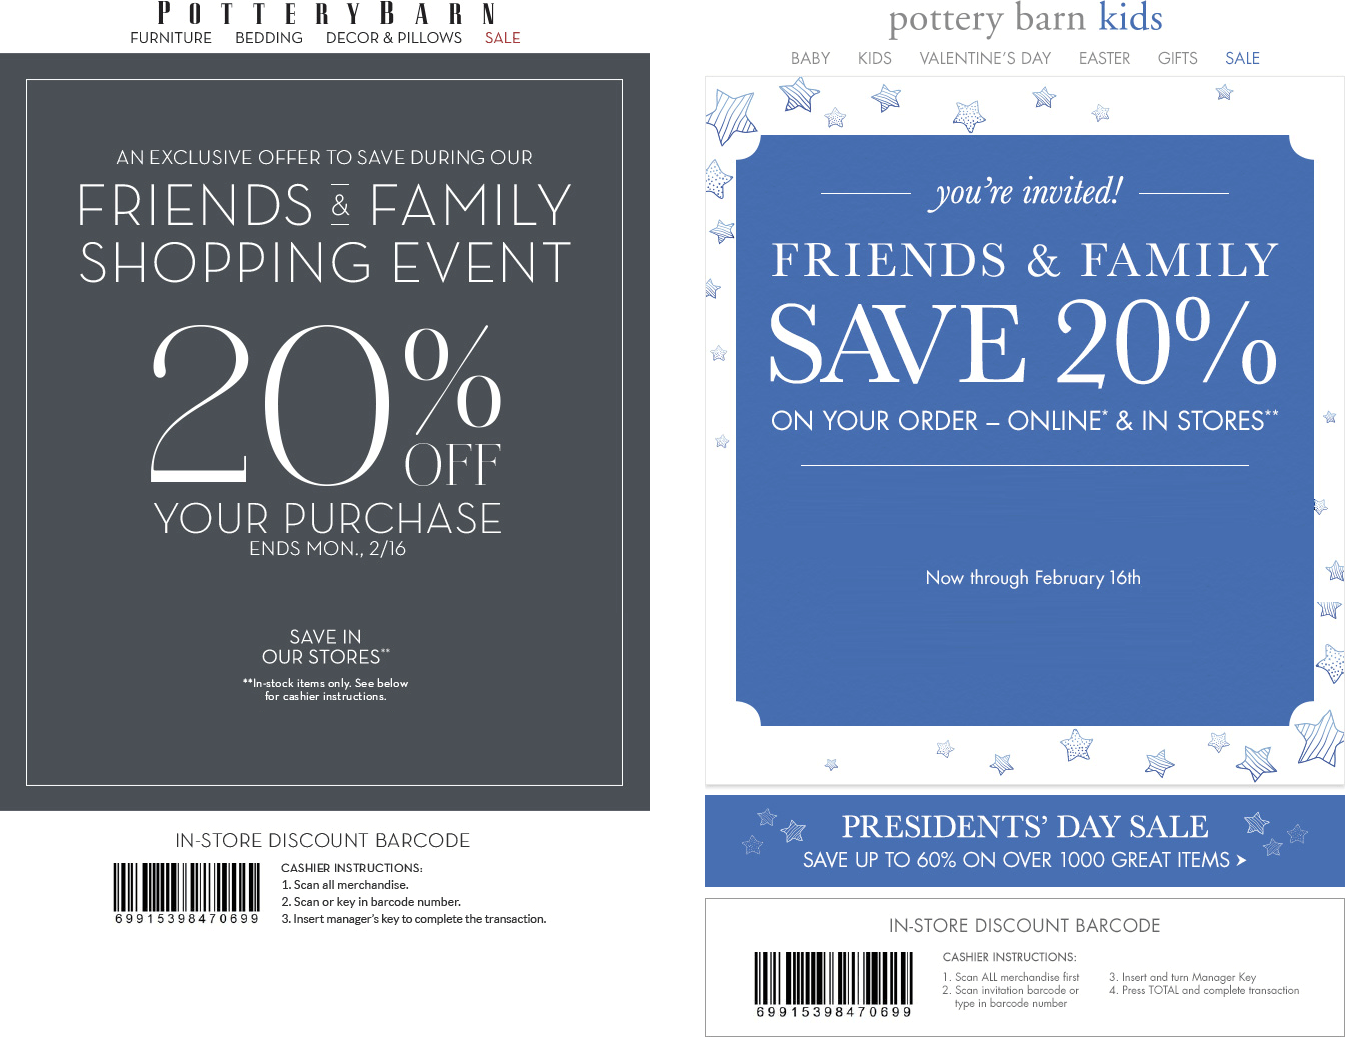 Pottery barn discount coupon codes